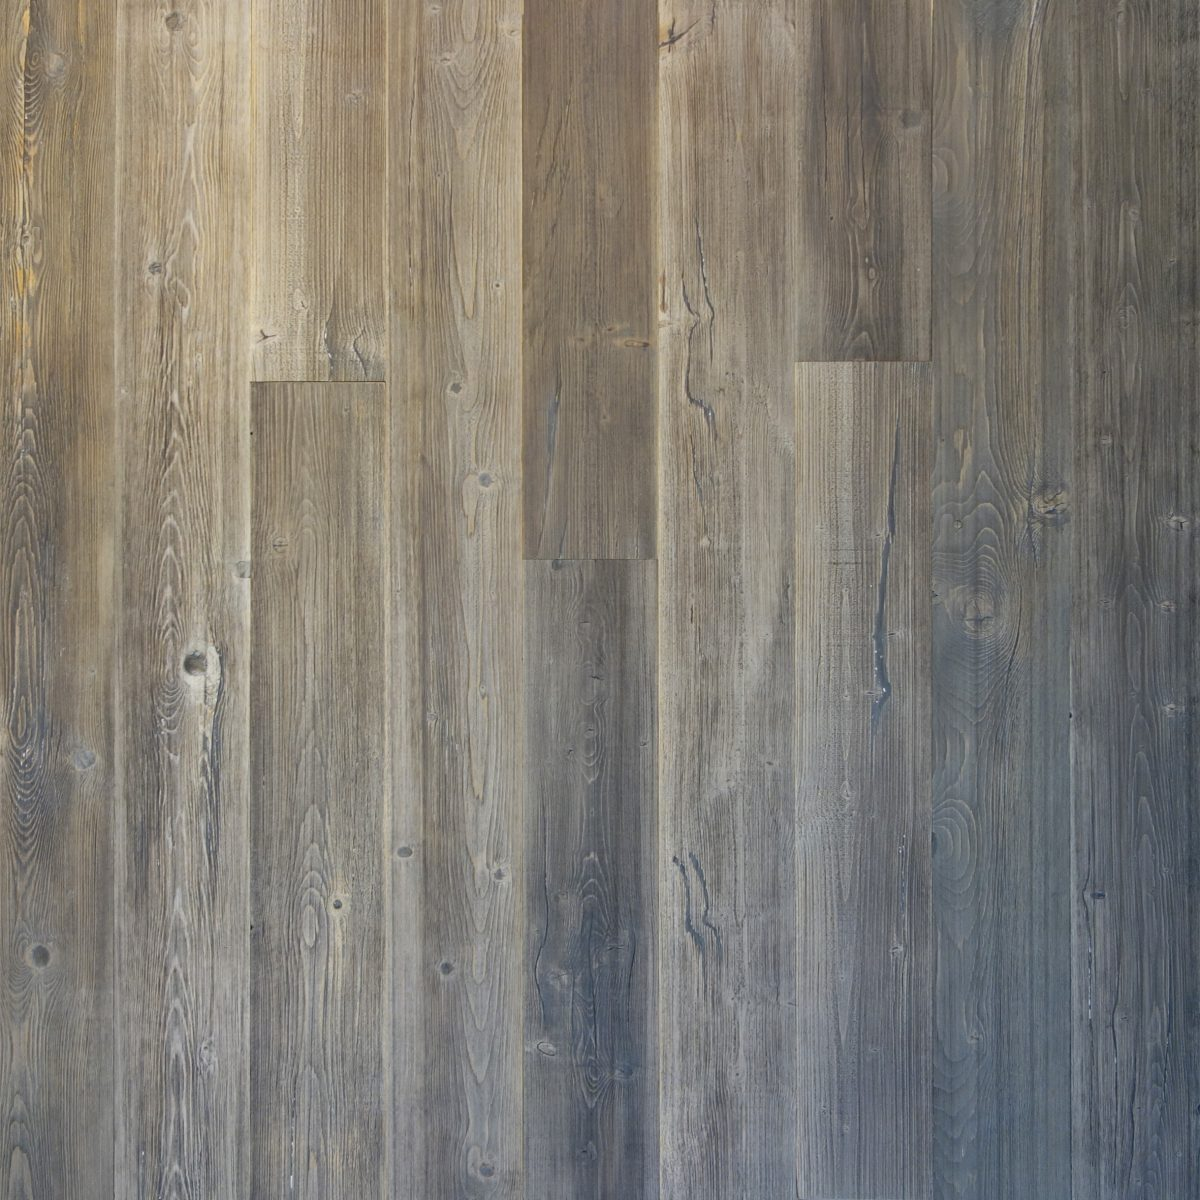 Real Wood Wall Panels Dark Brown Peel And Stick Its